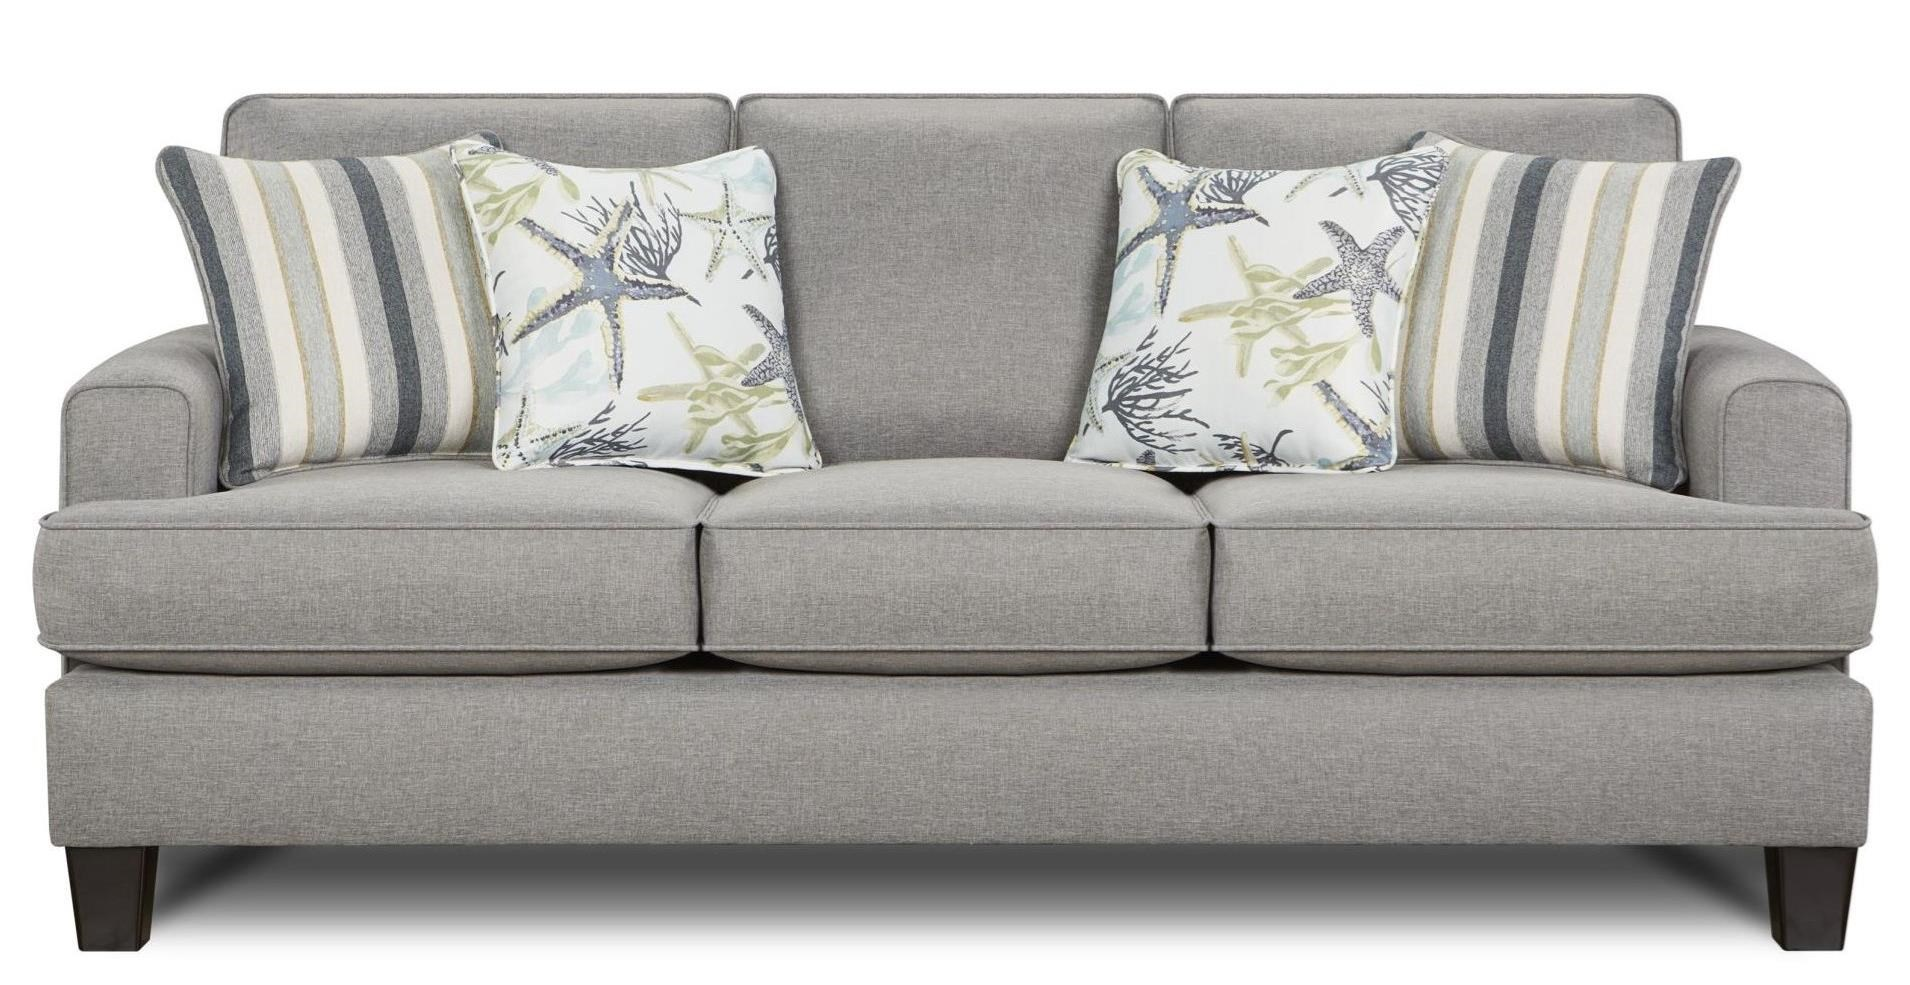 2600 JITTERBUG FLAX Sleeper by Fusion Furniture at Wilson's Furniture